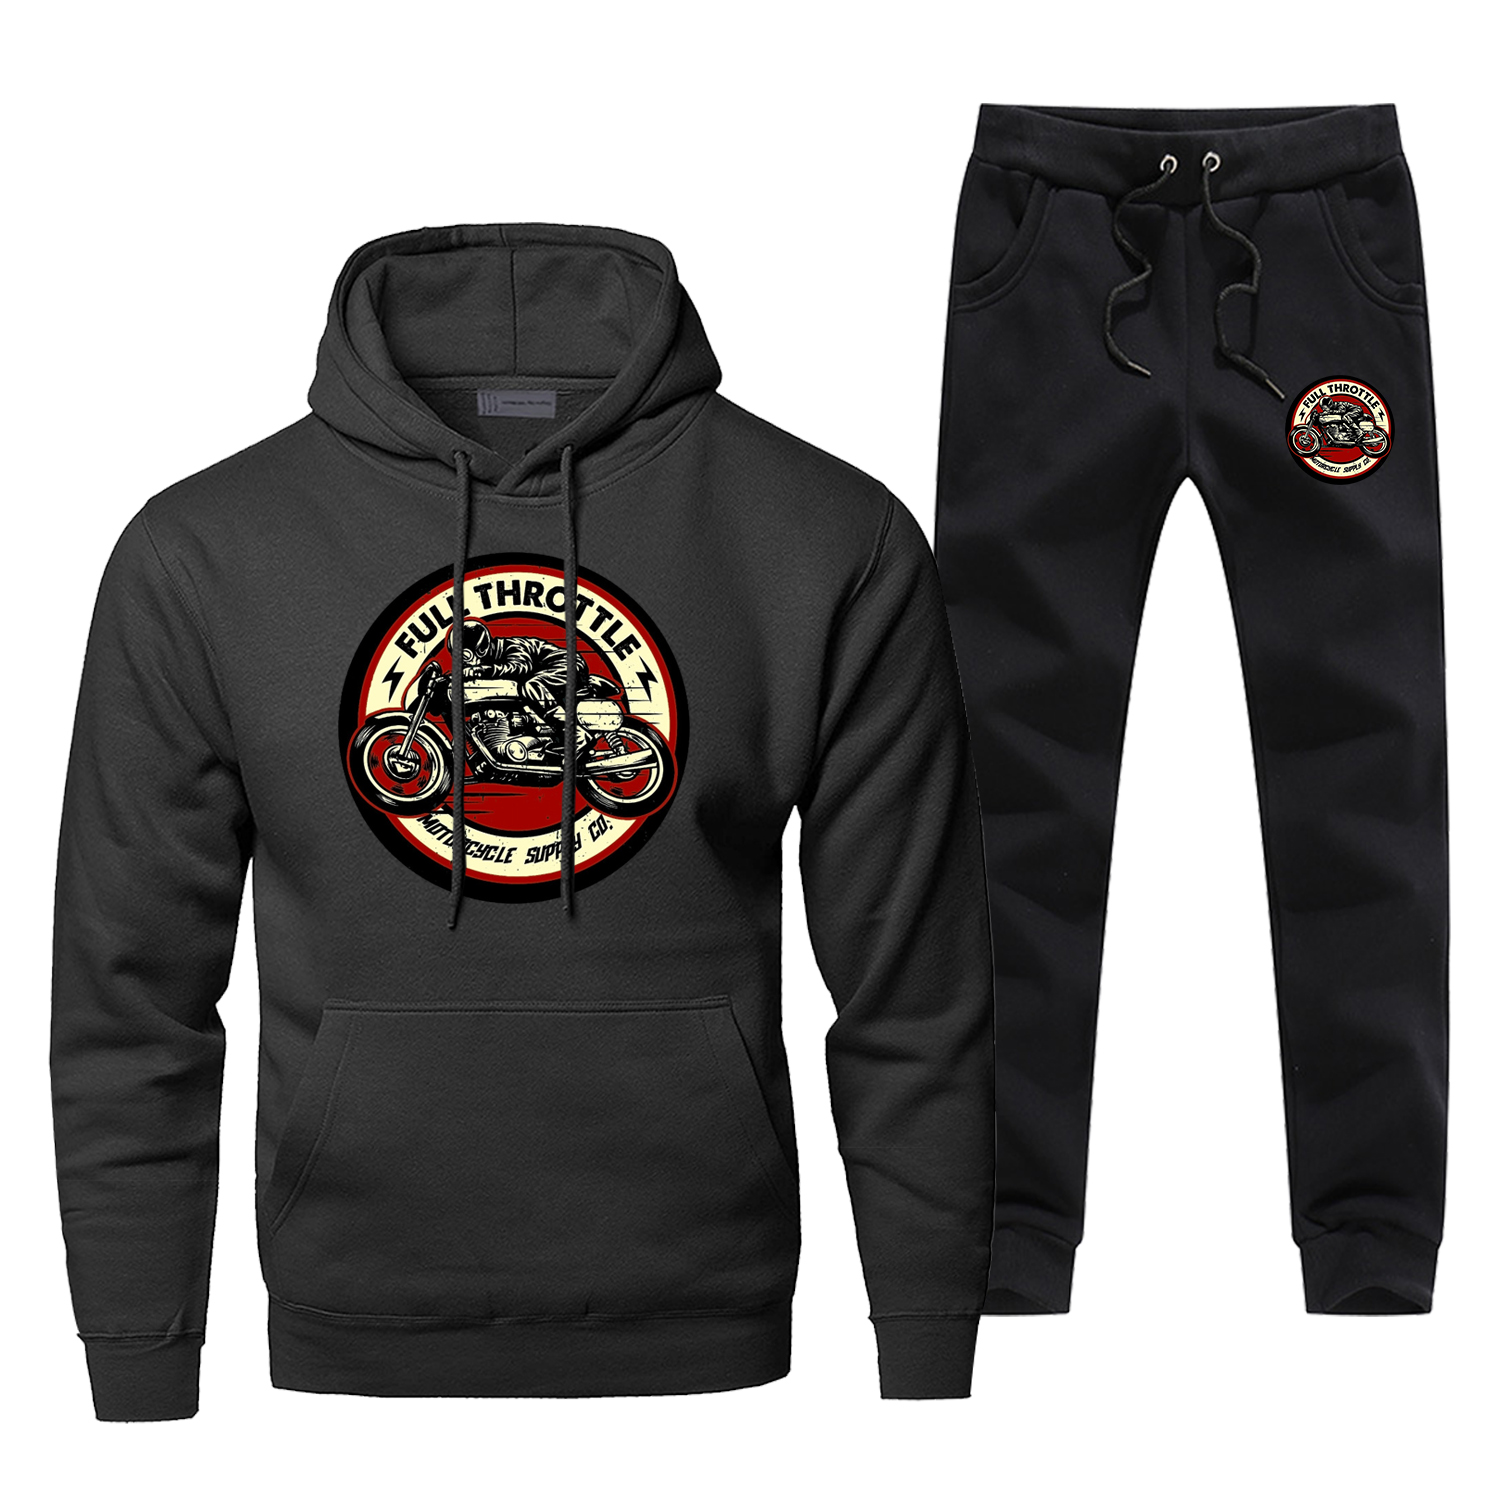 Hoodie Pants Set Full Throttle Cafe Men Racer Sweatshirt Male Hoodies Sweatshirts Mens Sets Two Piece Pant Pullover Hoody Coat